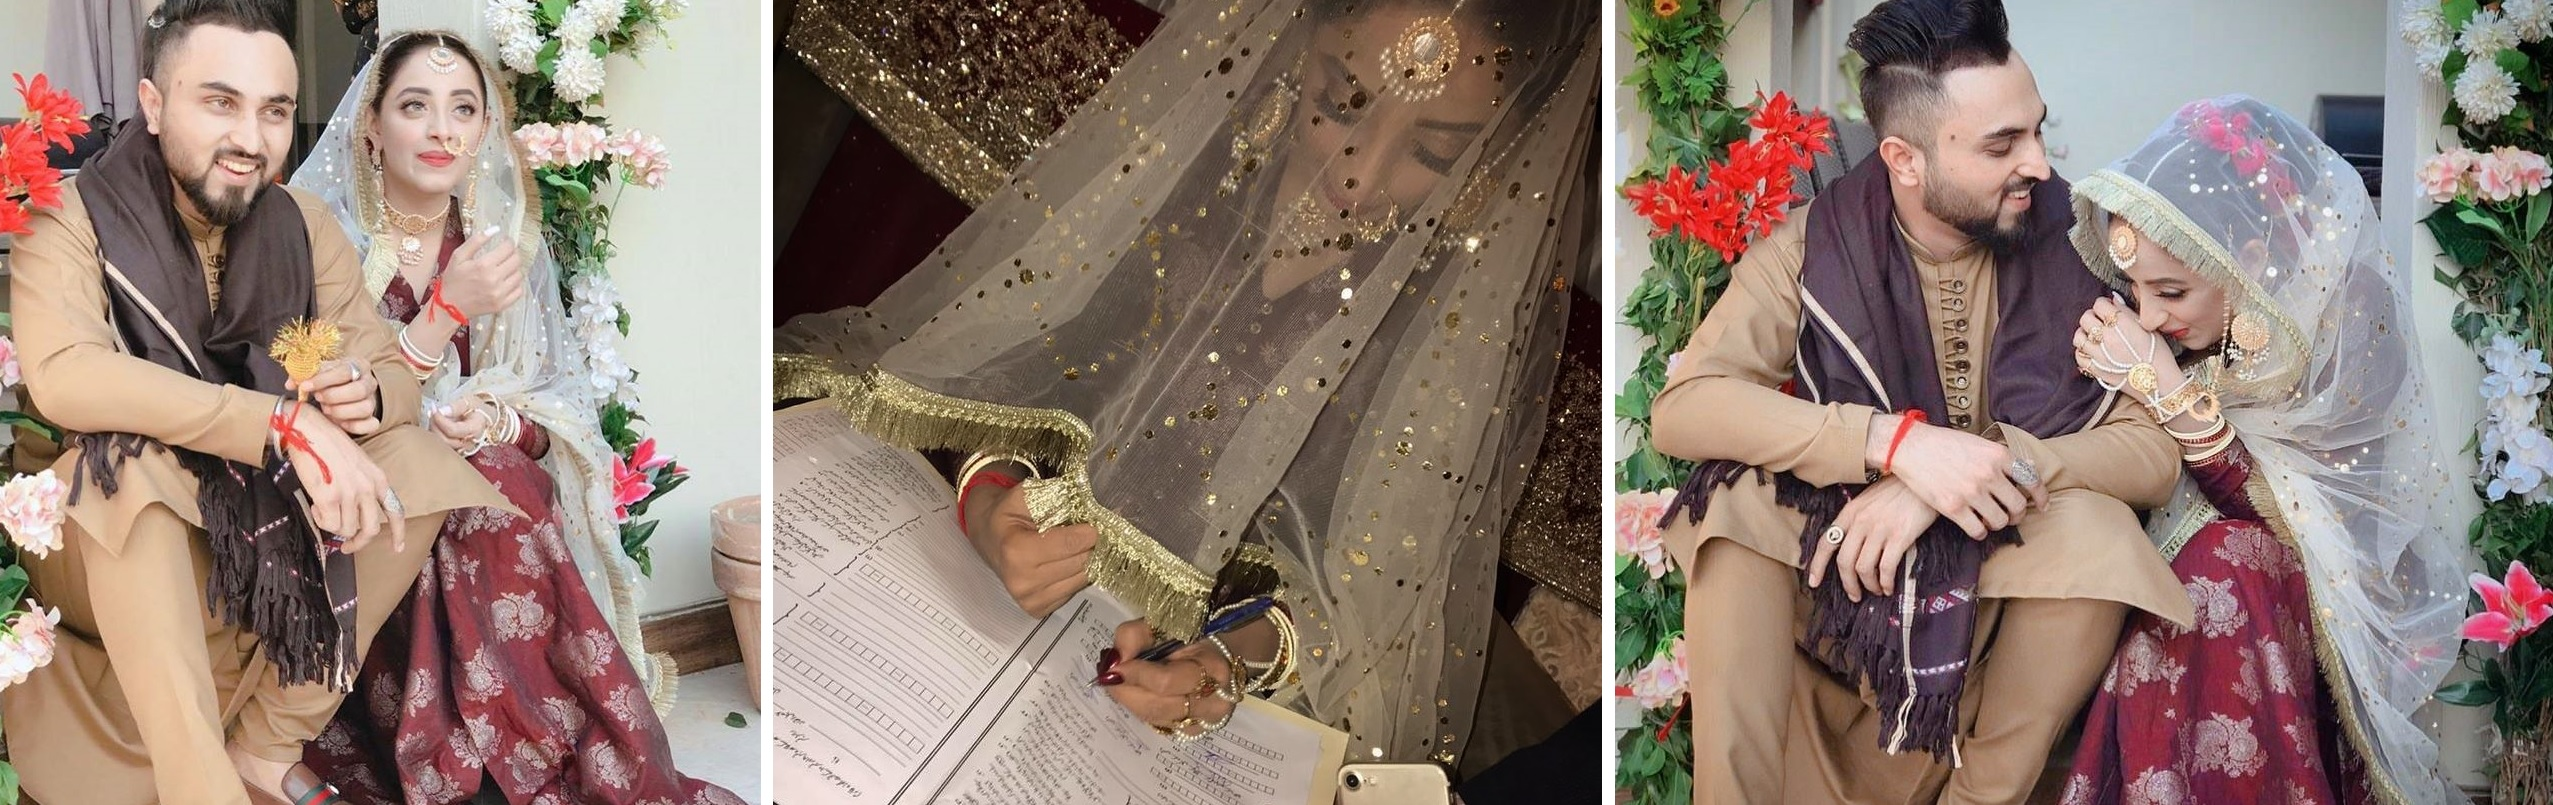 Sanam Chaudhry Actress Nikkah with Singer Somee Chohan Pictures